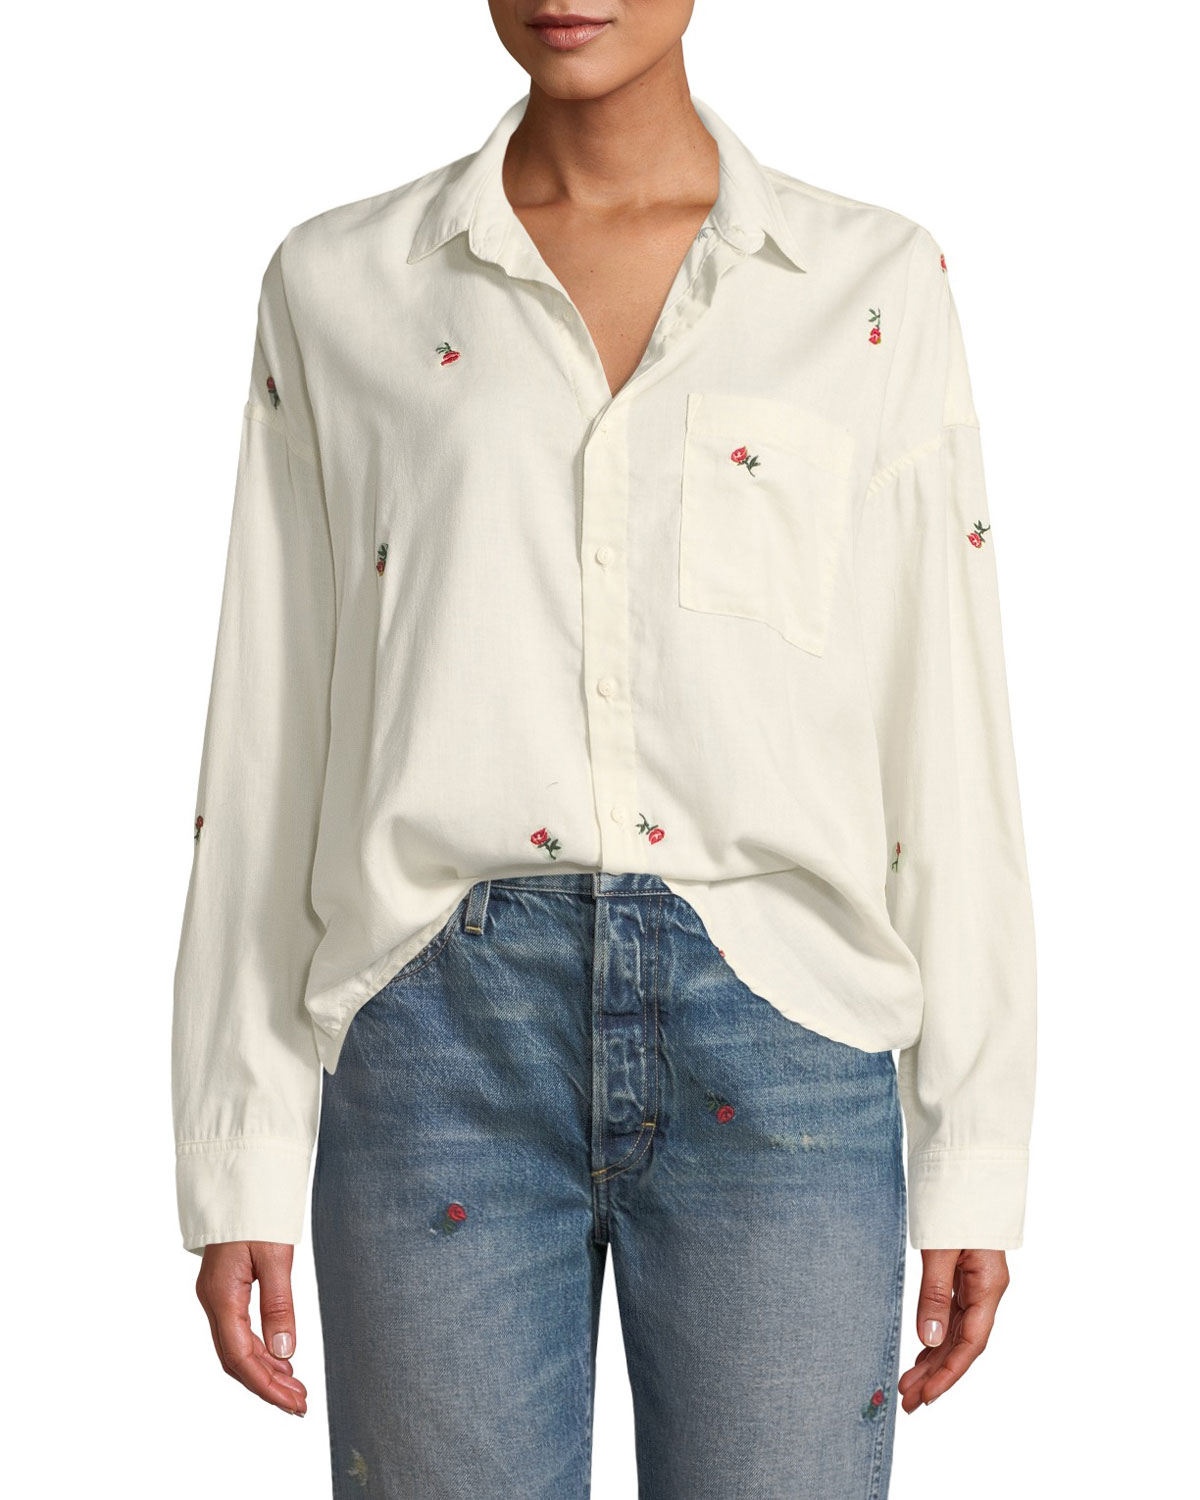 AMO DENIM Embroidered Boxy Button-Down Shirt in White Pattern